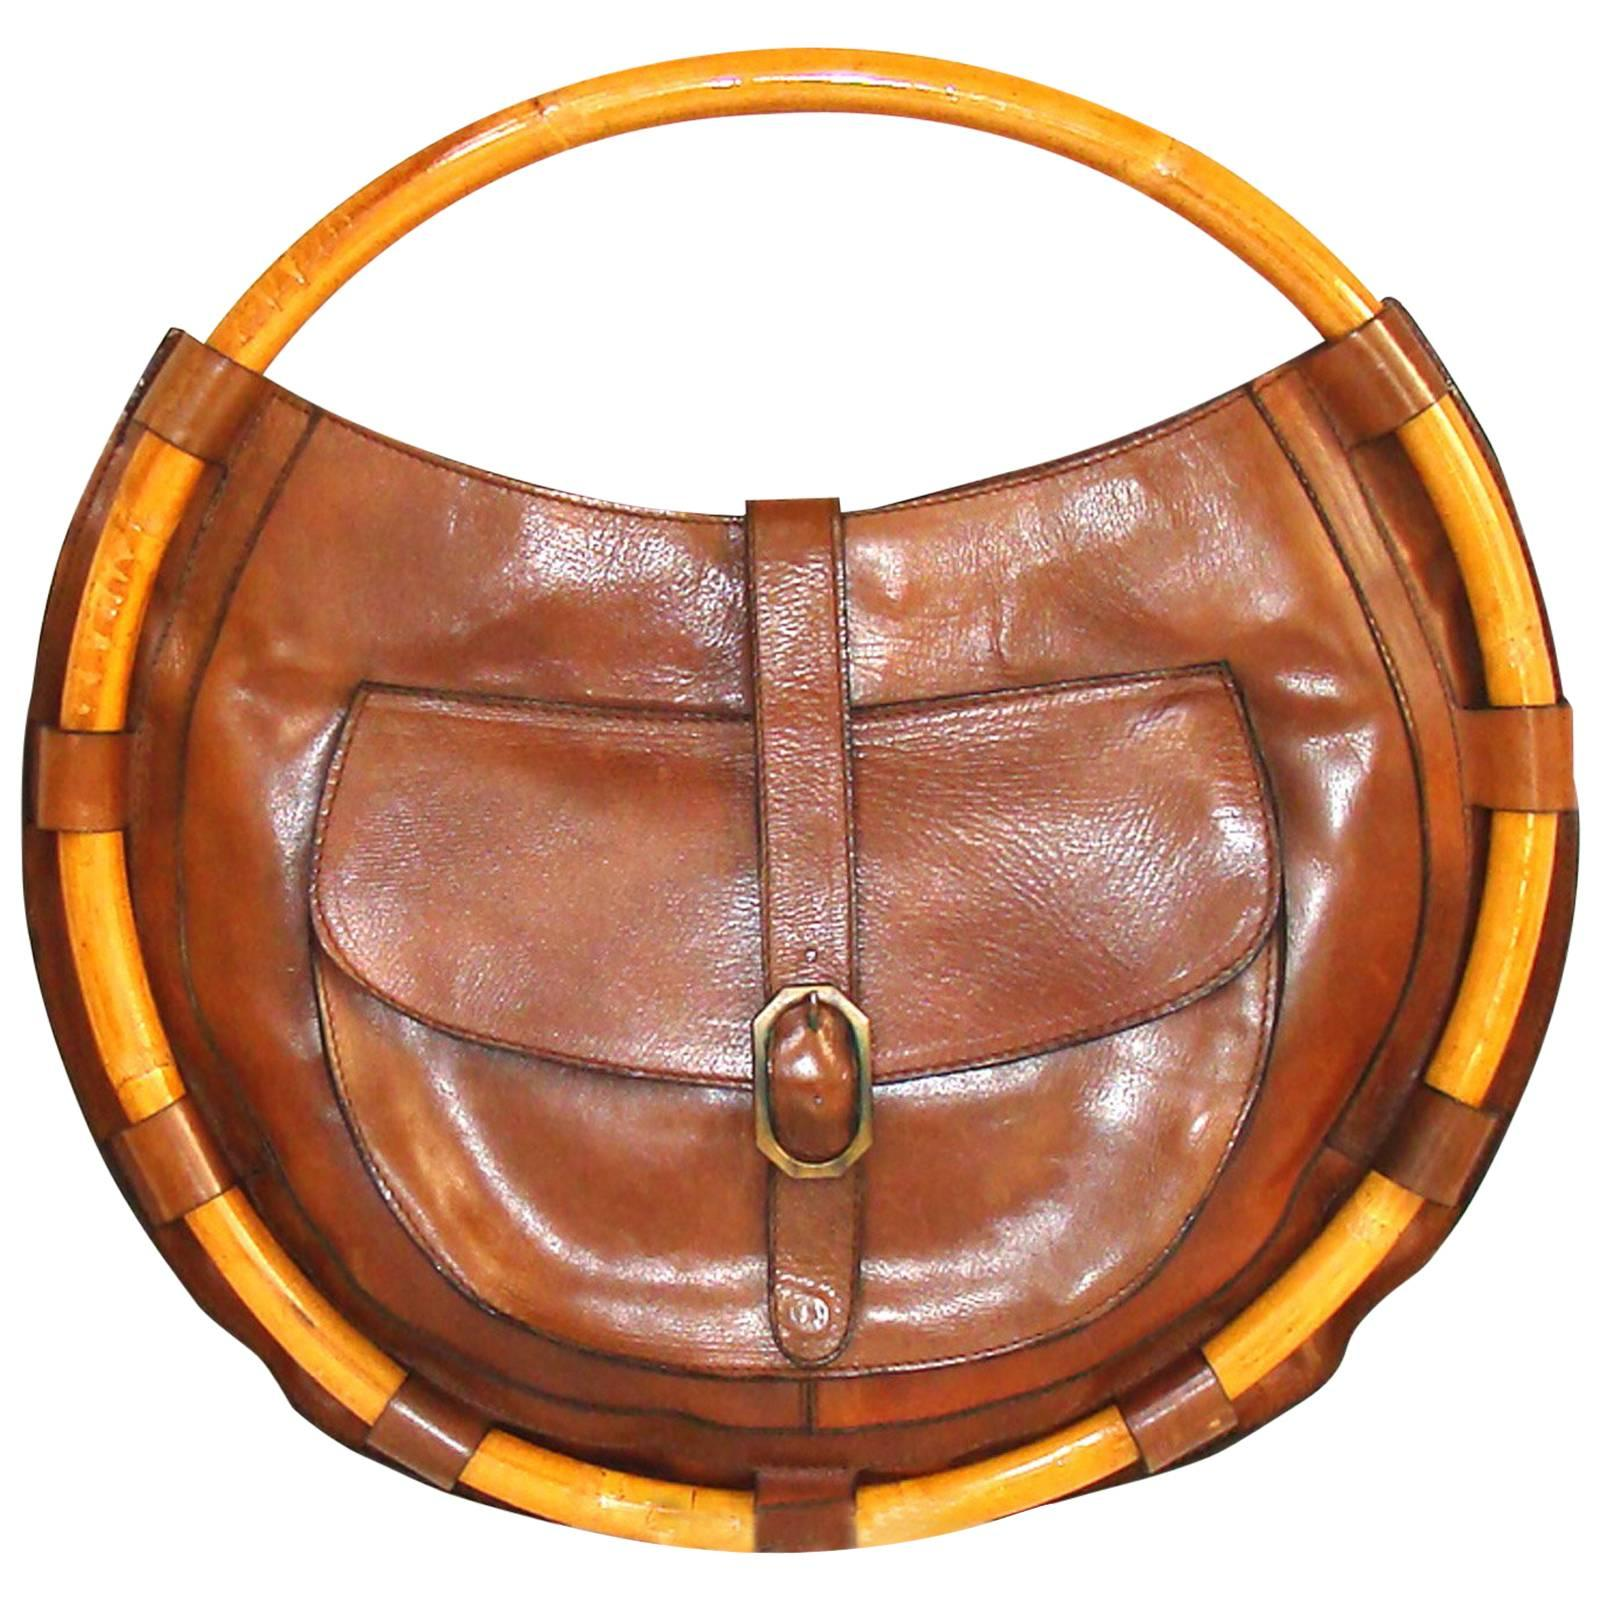 1stdibs Large Circular Fall Architectural Bamboo And Leather Purse 0zxoBu1